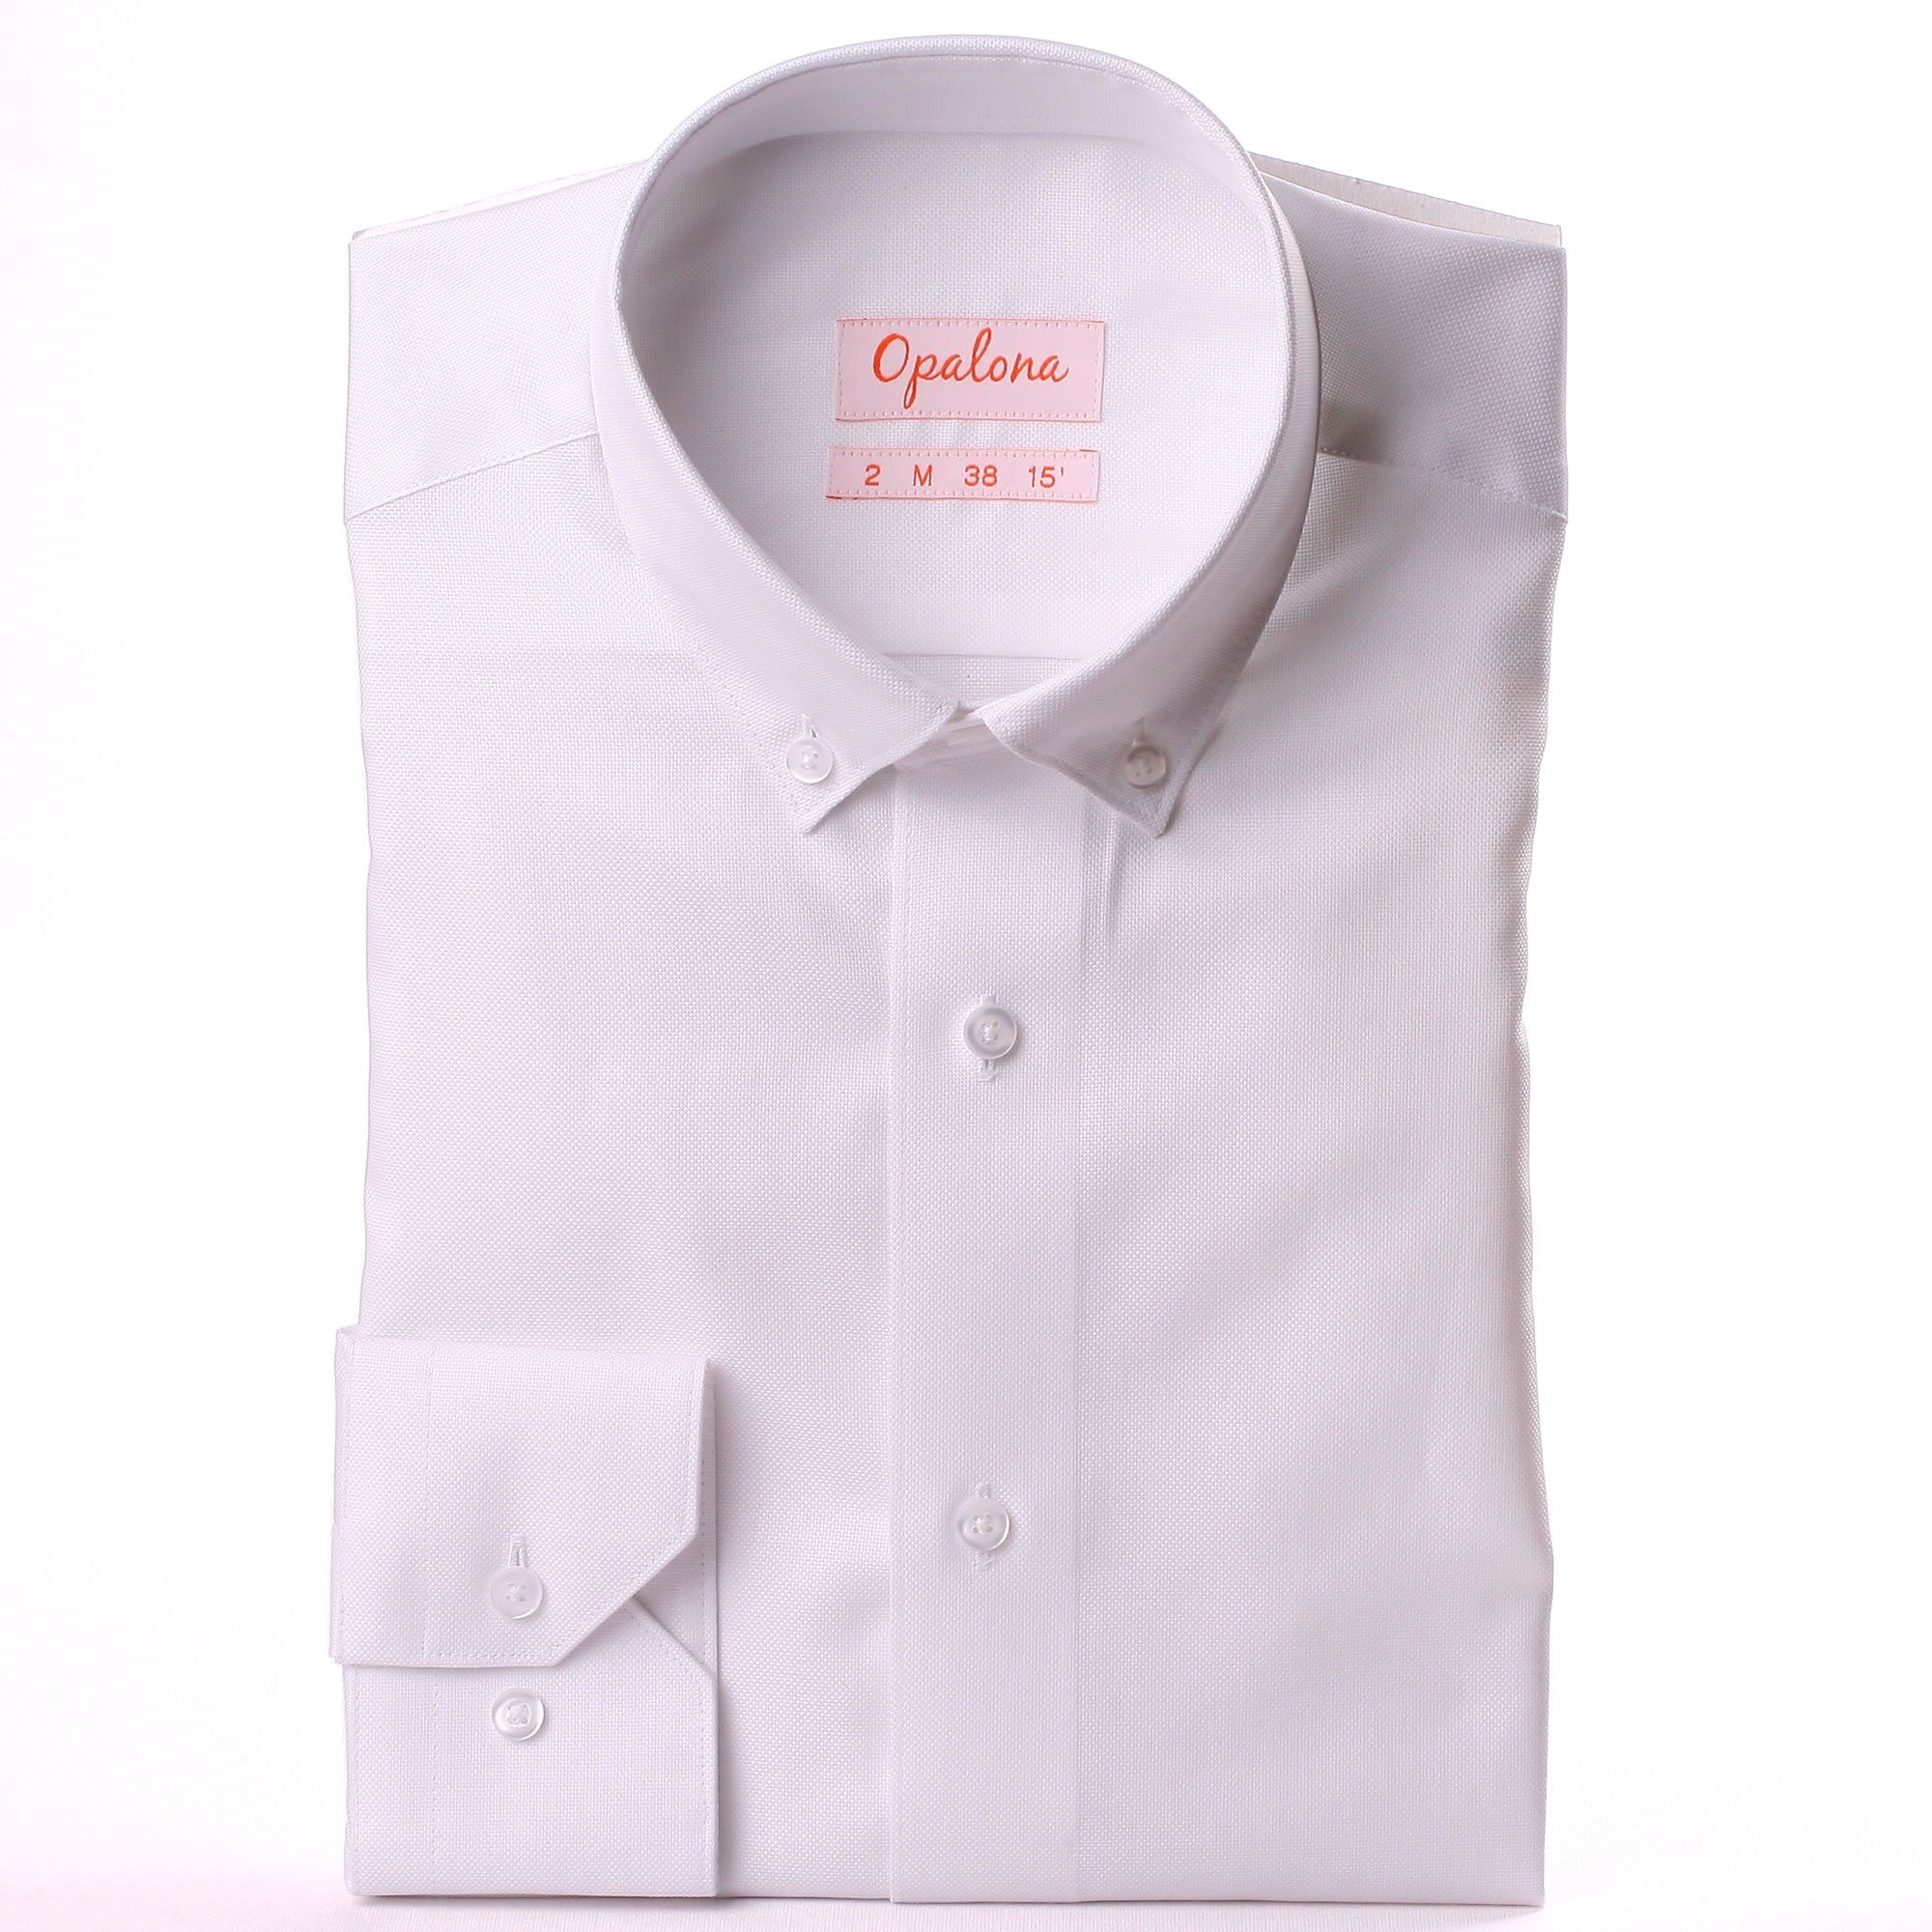 White oxford shirt with a button down collar for White button down collar oxford shirt